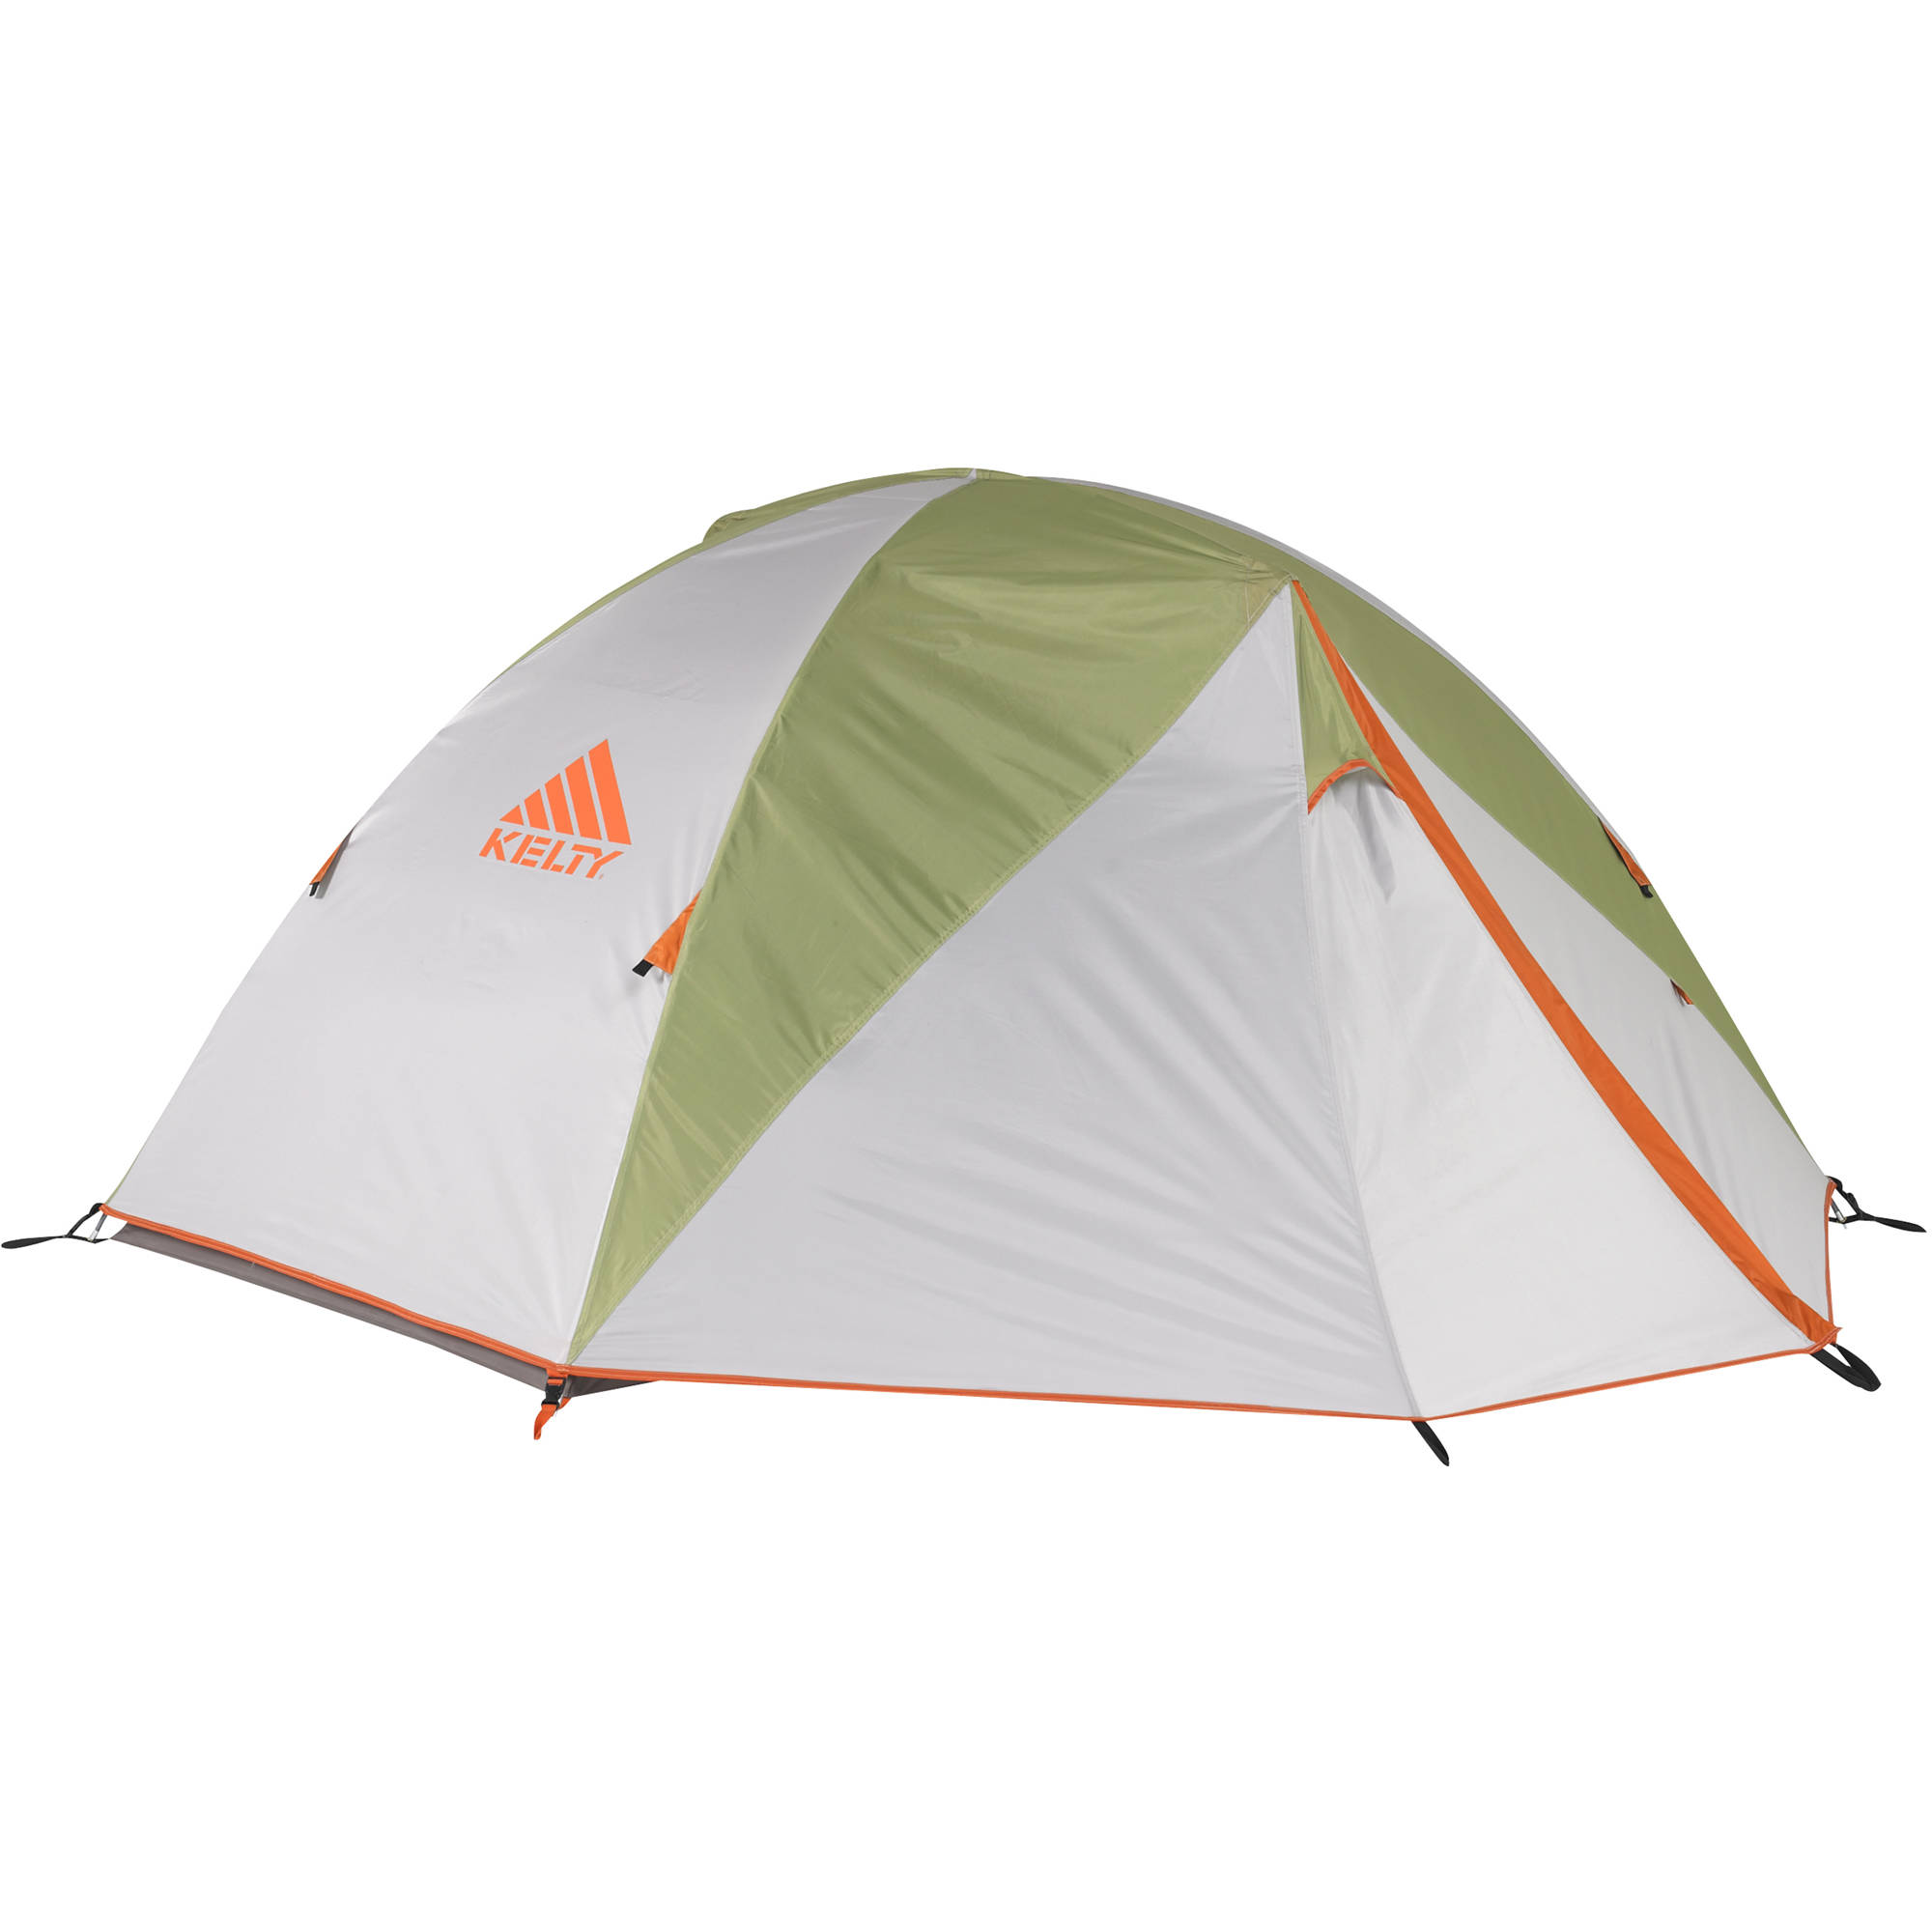 Kelty Acadia 2-Person Tent  sc 1 st  Bu0026H & Kelty Acadia 2-Person Tent 40814812 Bu0026H Photo Video